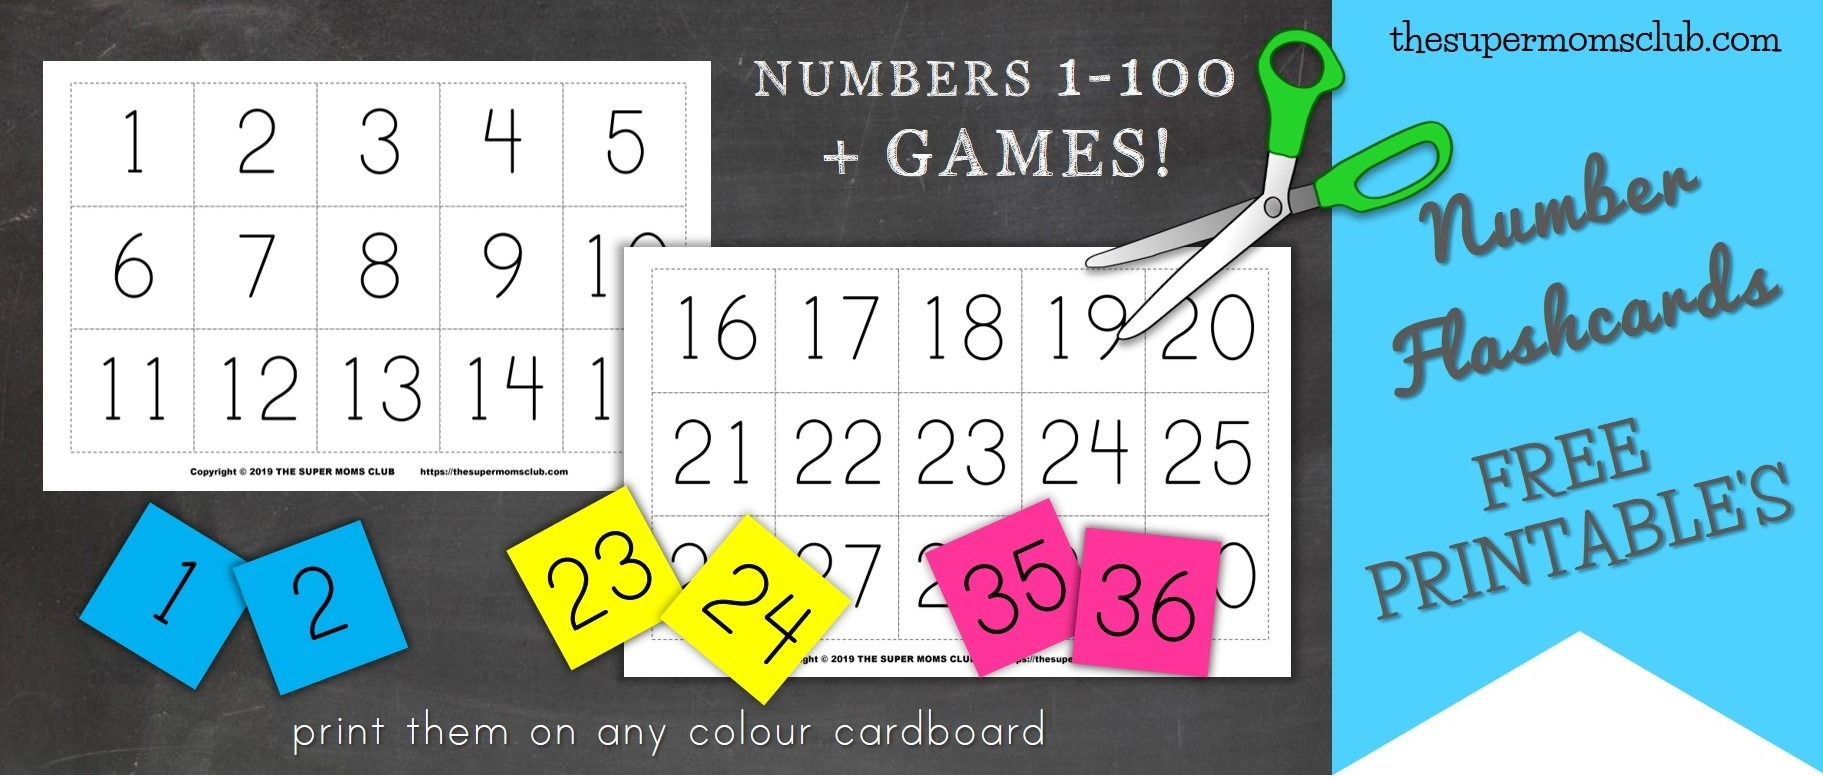 photograph regarding Printable Number Cards 1 100 known as Absolutely free Printable Range Flashcards - The Tremendous Mothers Club